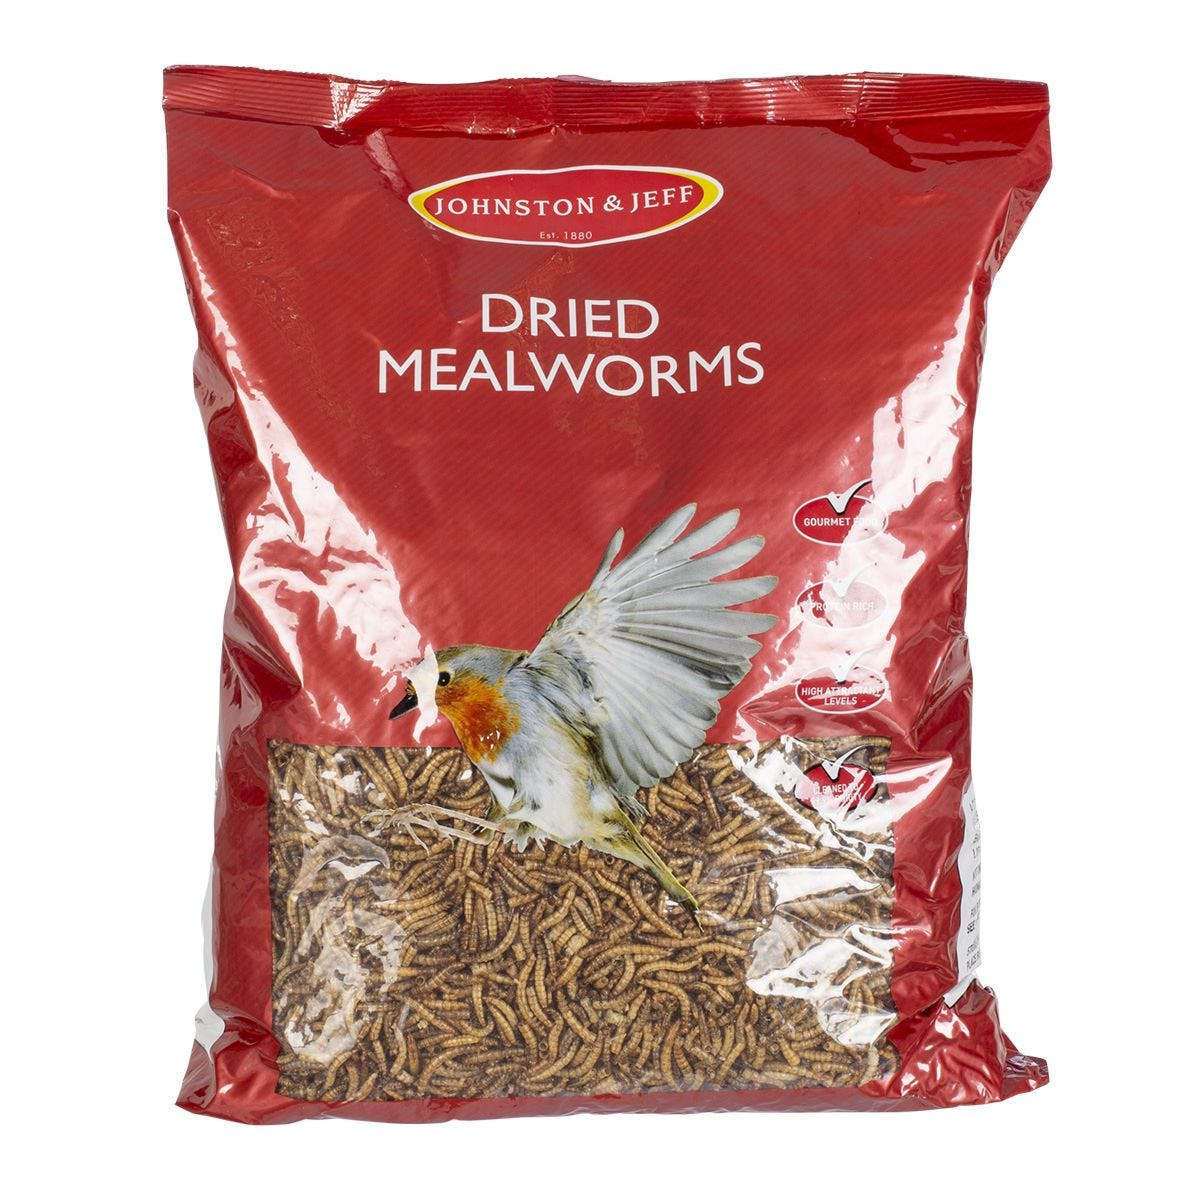 Johnston & Jeff Dried Mealworms - 1kg